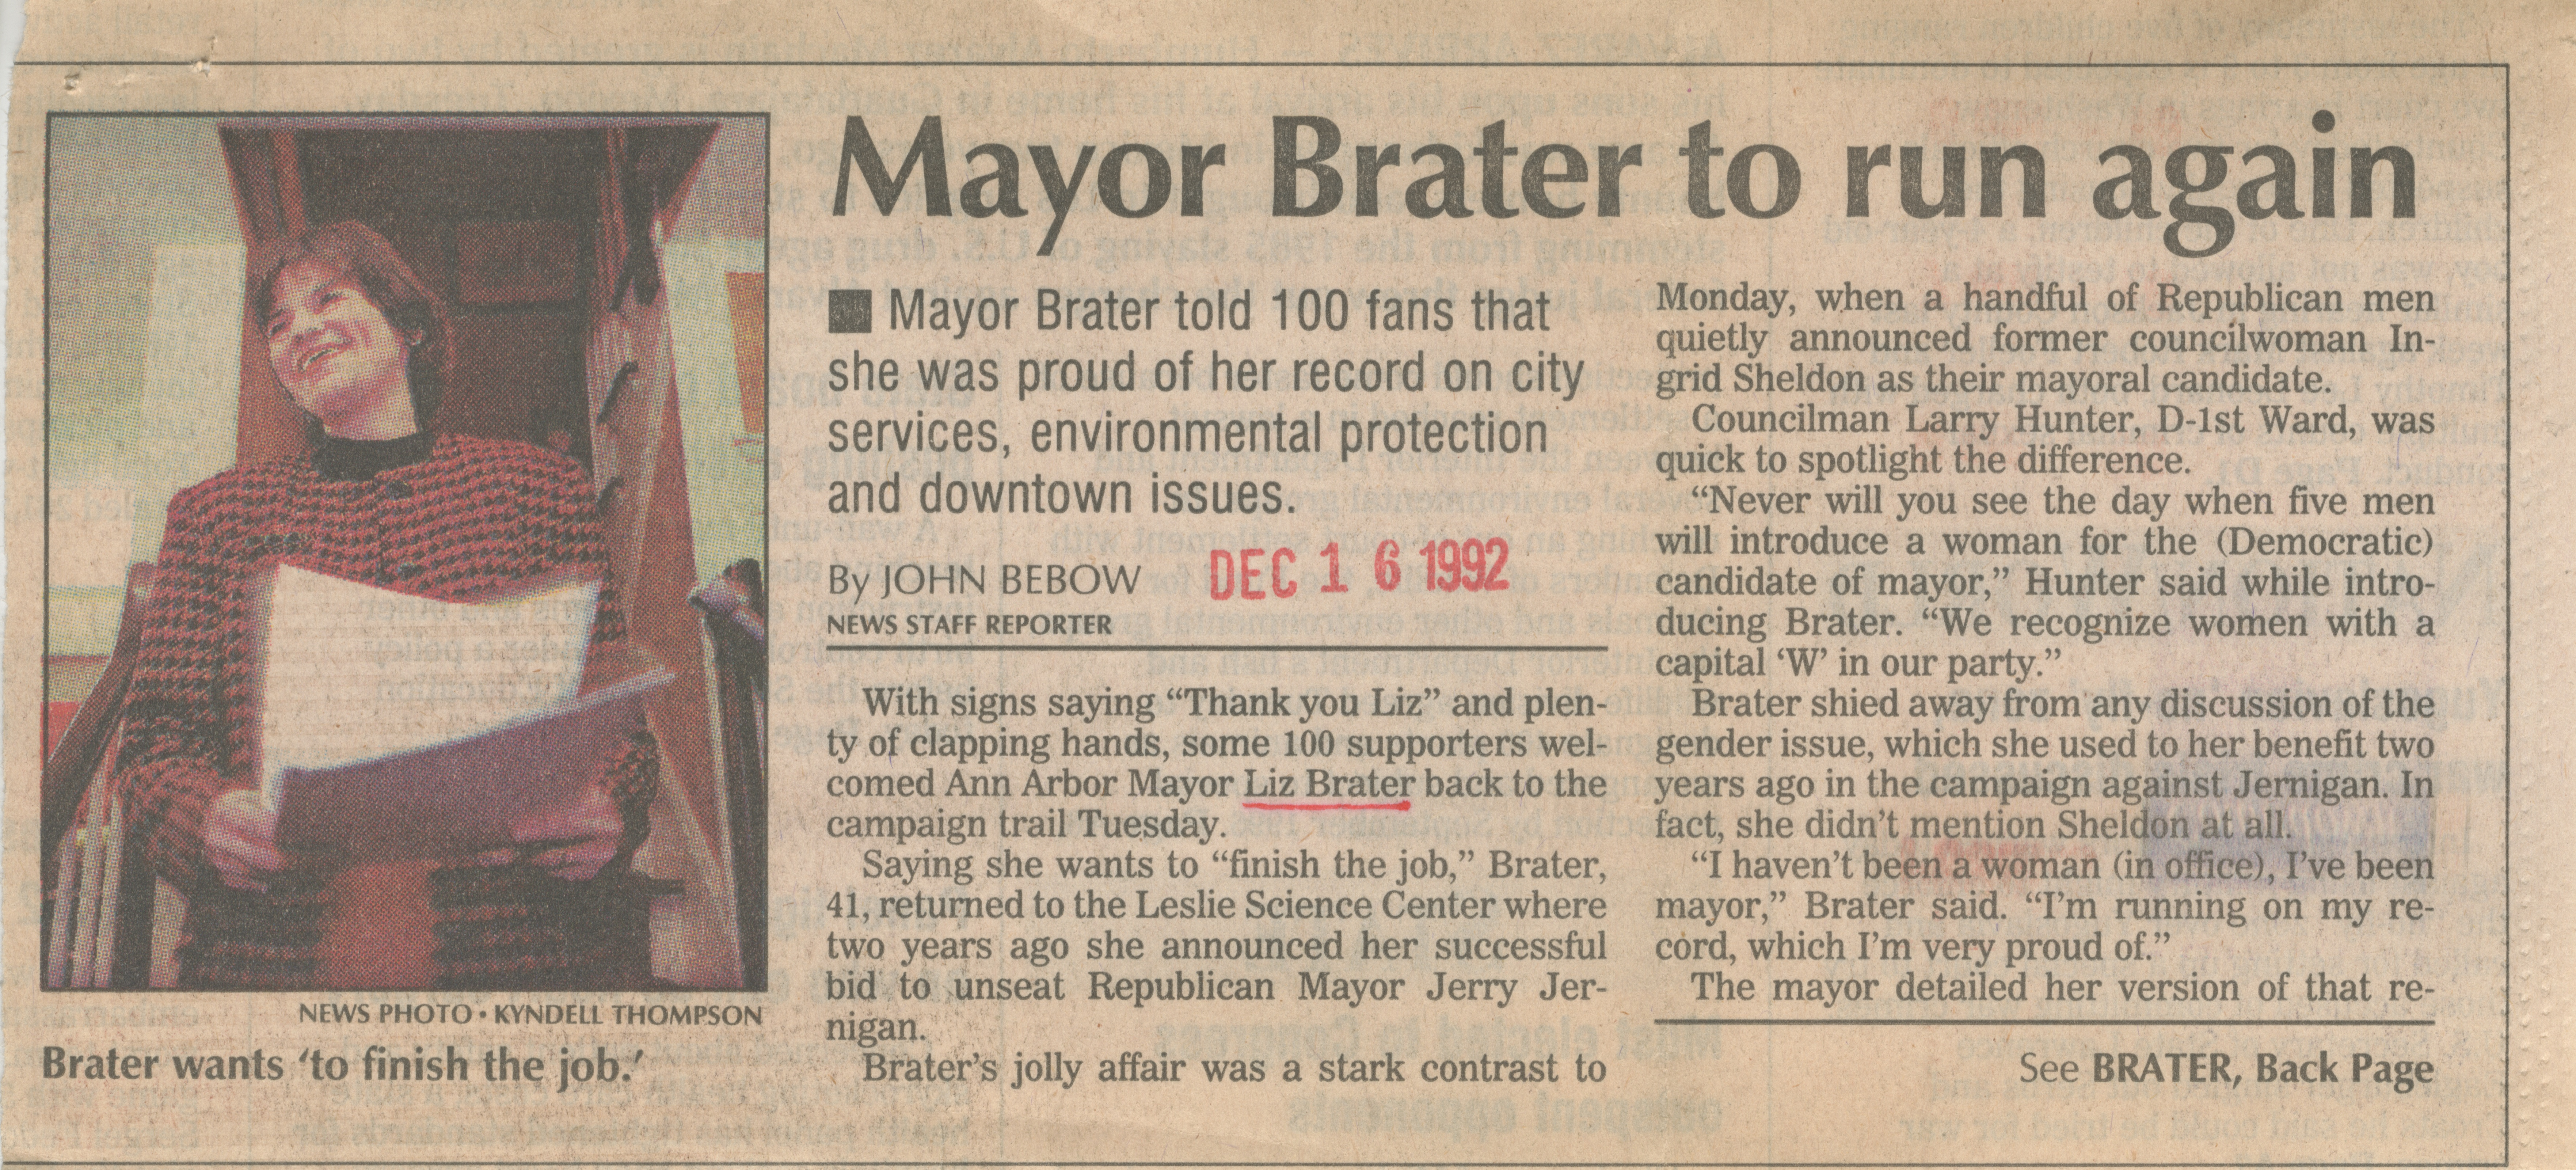 Mayor Brater to run again image